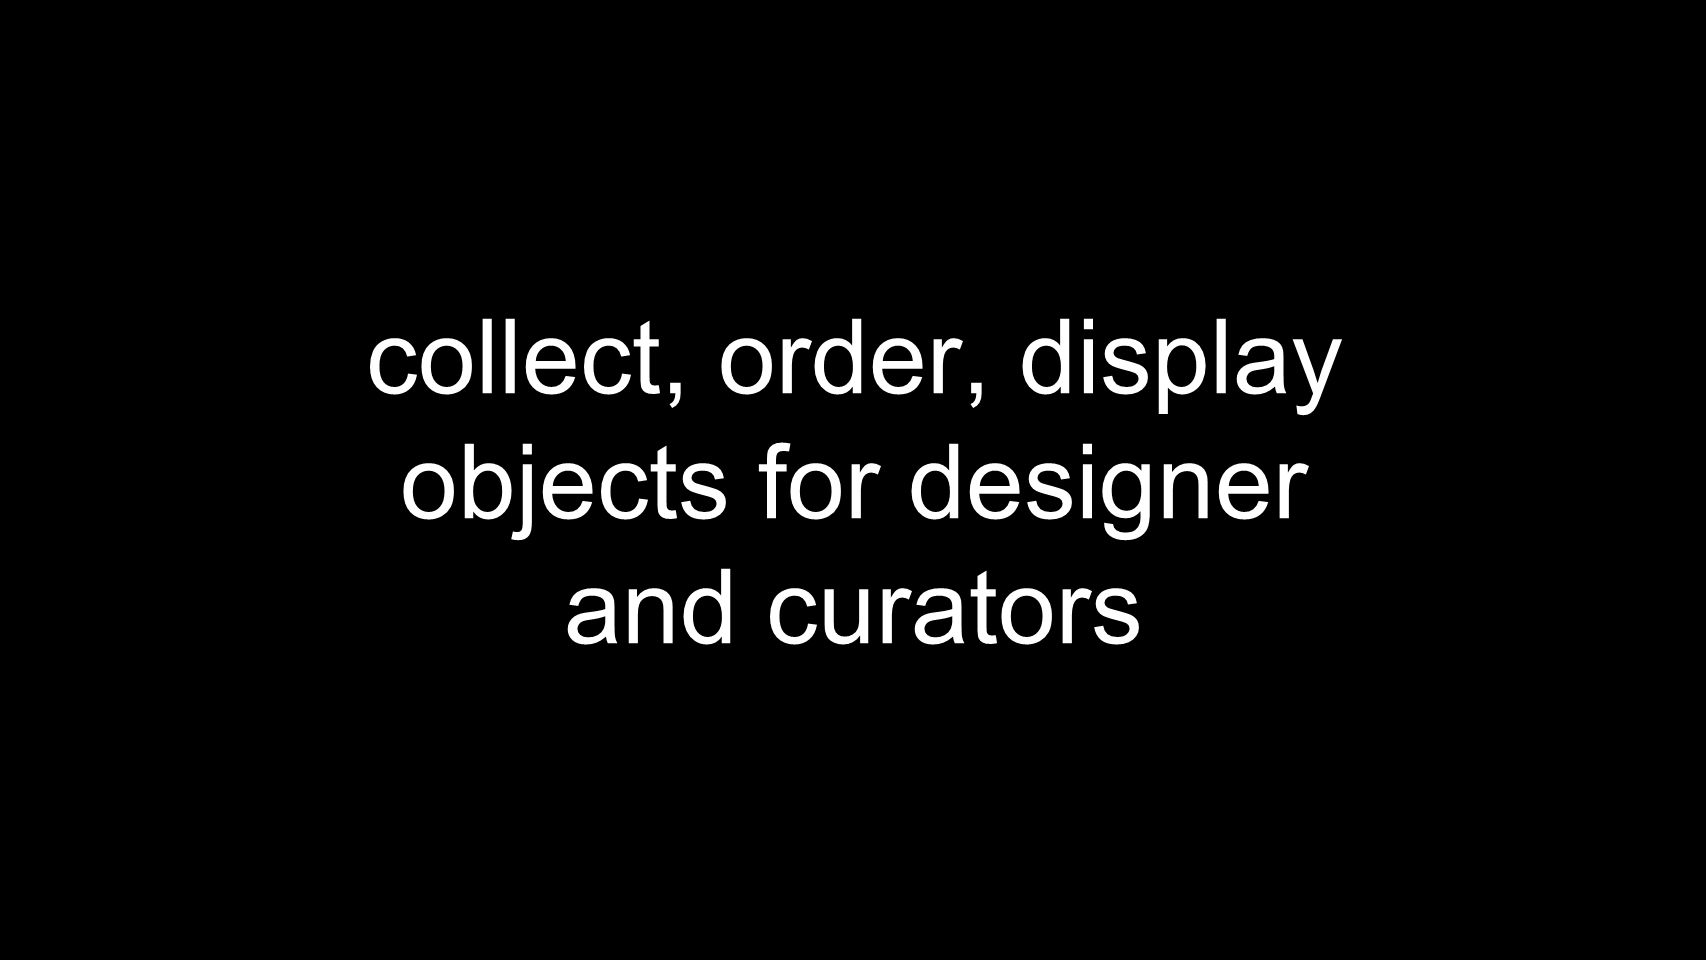 collect, order, display objects for designer and curators